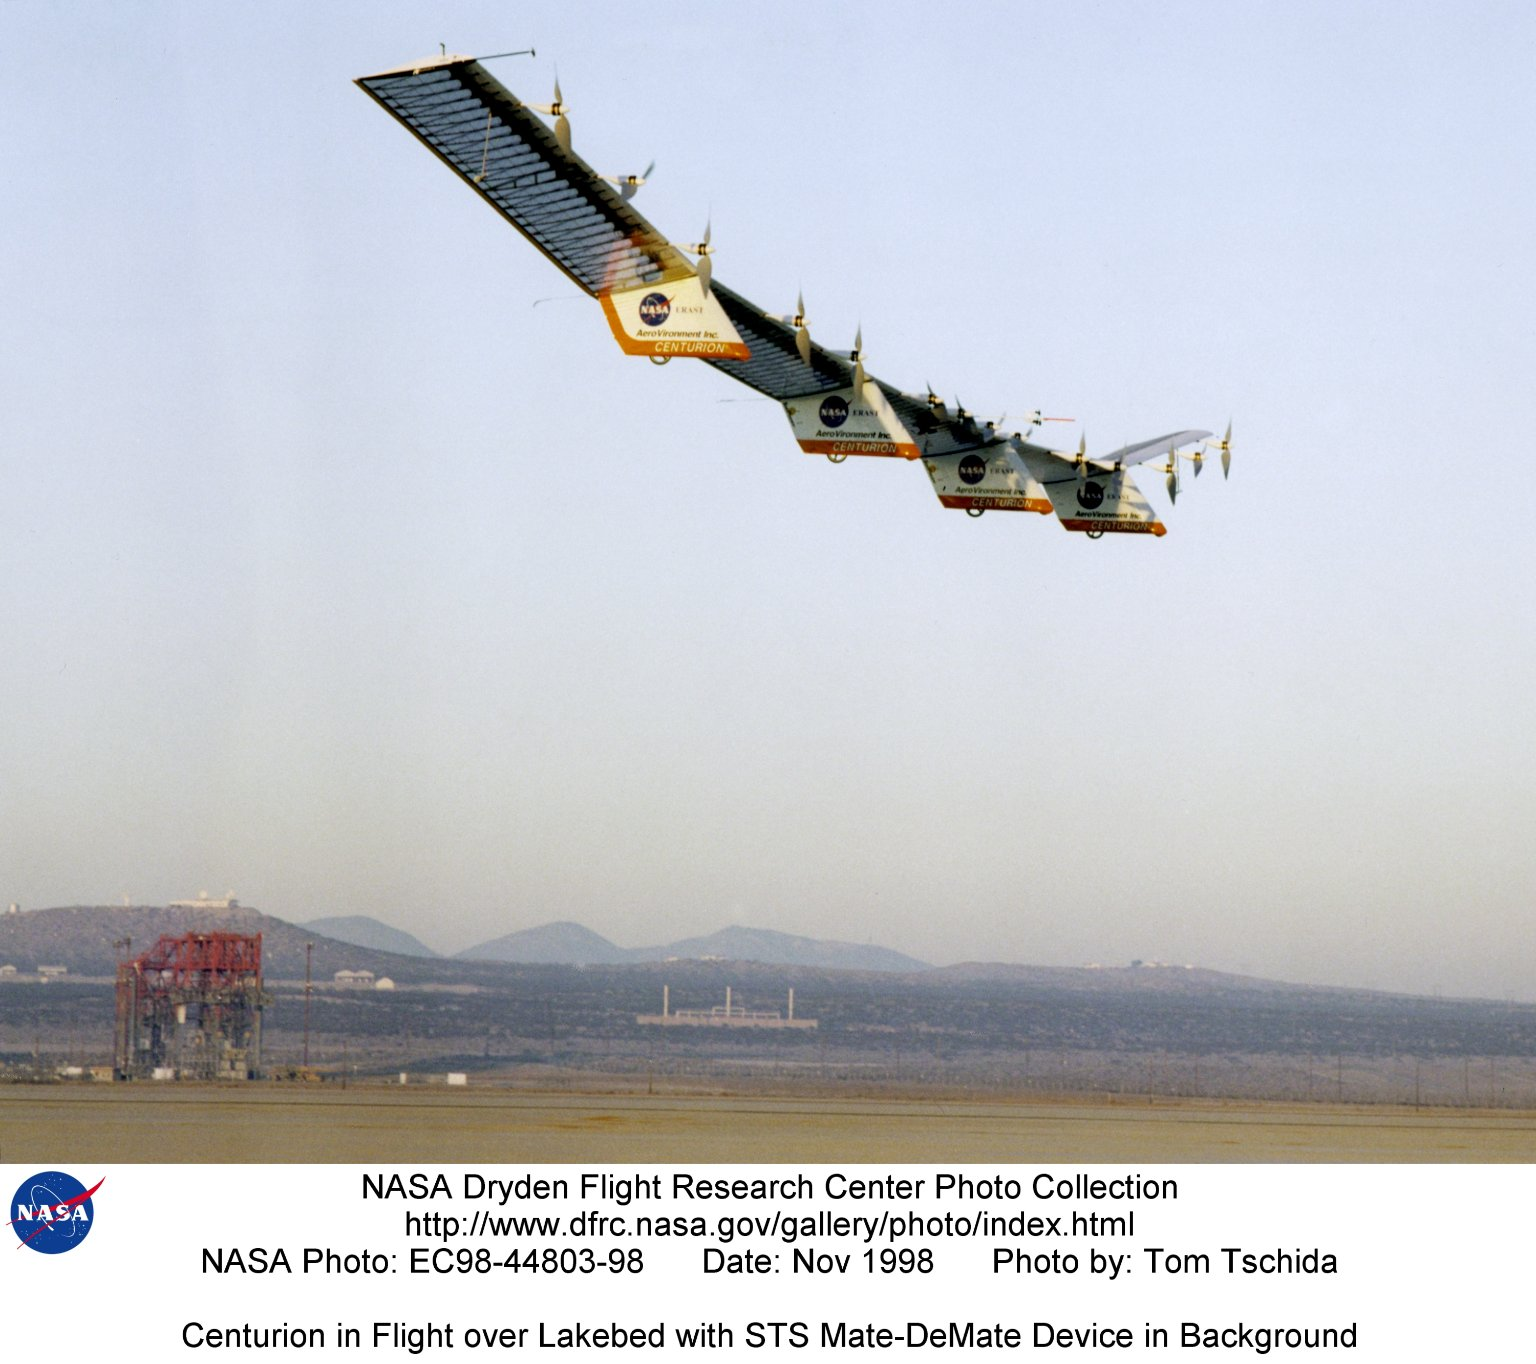 Centurion in Flight over Lakebed with STS Mate-DeMate Device in Background